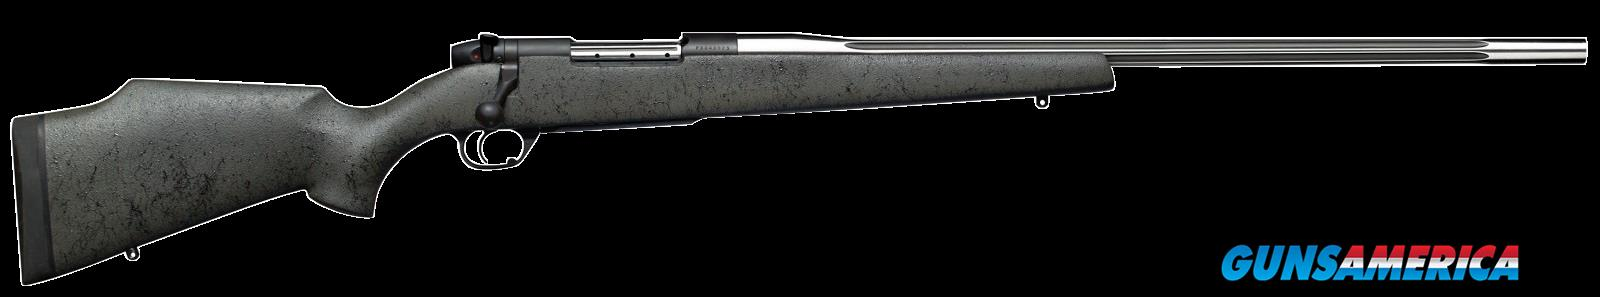 "Weatherby MARM338LR8B Mark V Accumark RC Bolt 338 Lapua Magnum 28"" 2+1 Synthetic Gray w/Blk  Guns > Rifles > Weatherby Rifles > Sporting"